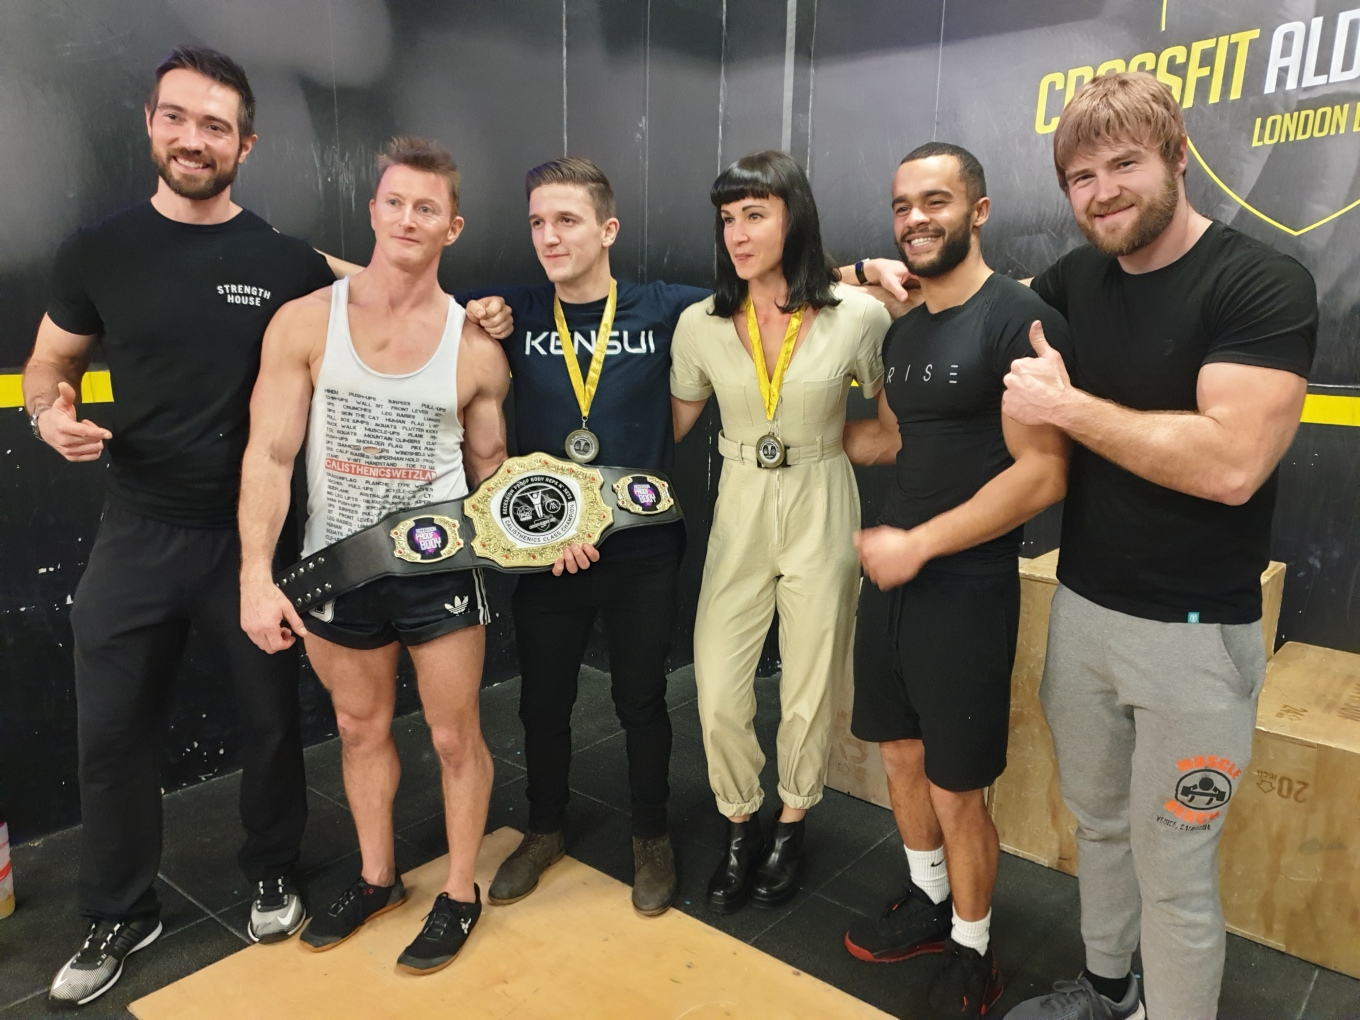 Male & Female winners December 2019 Crossfit aldgate